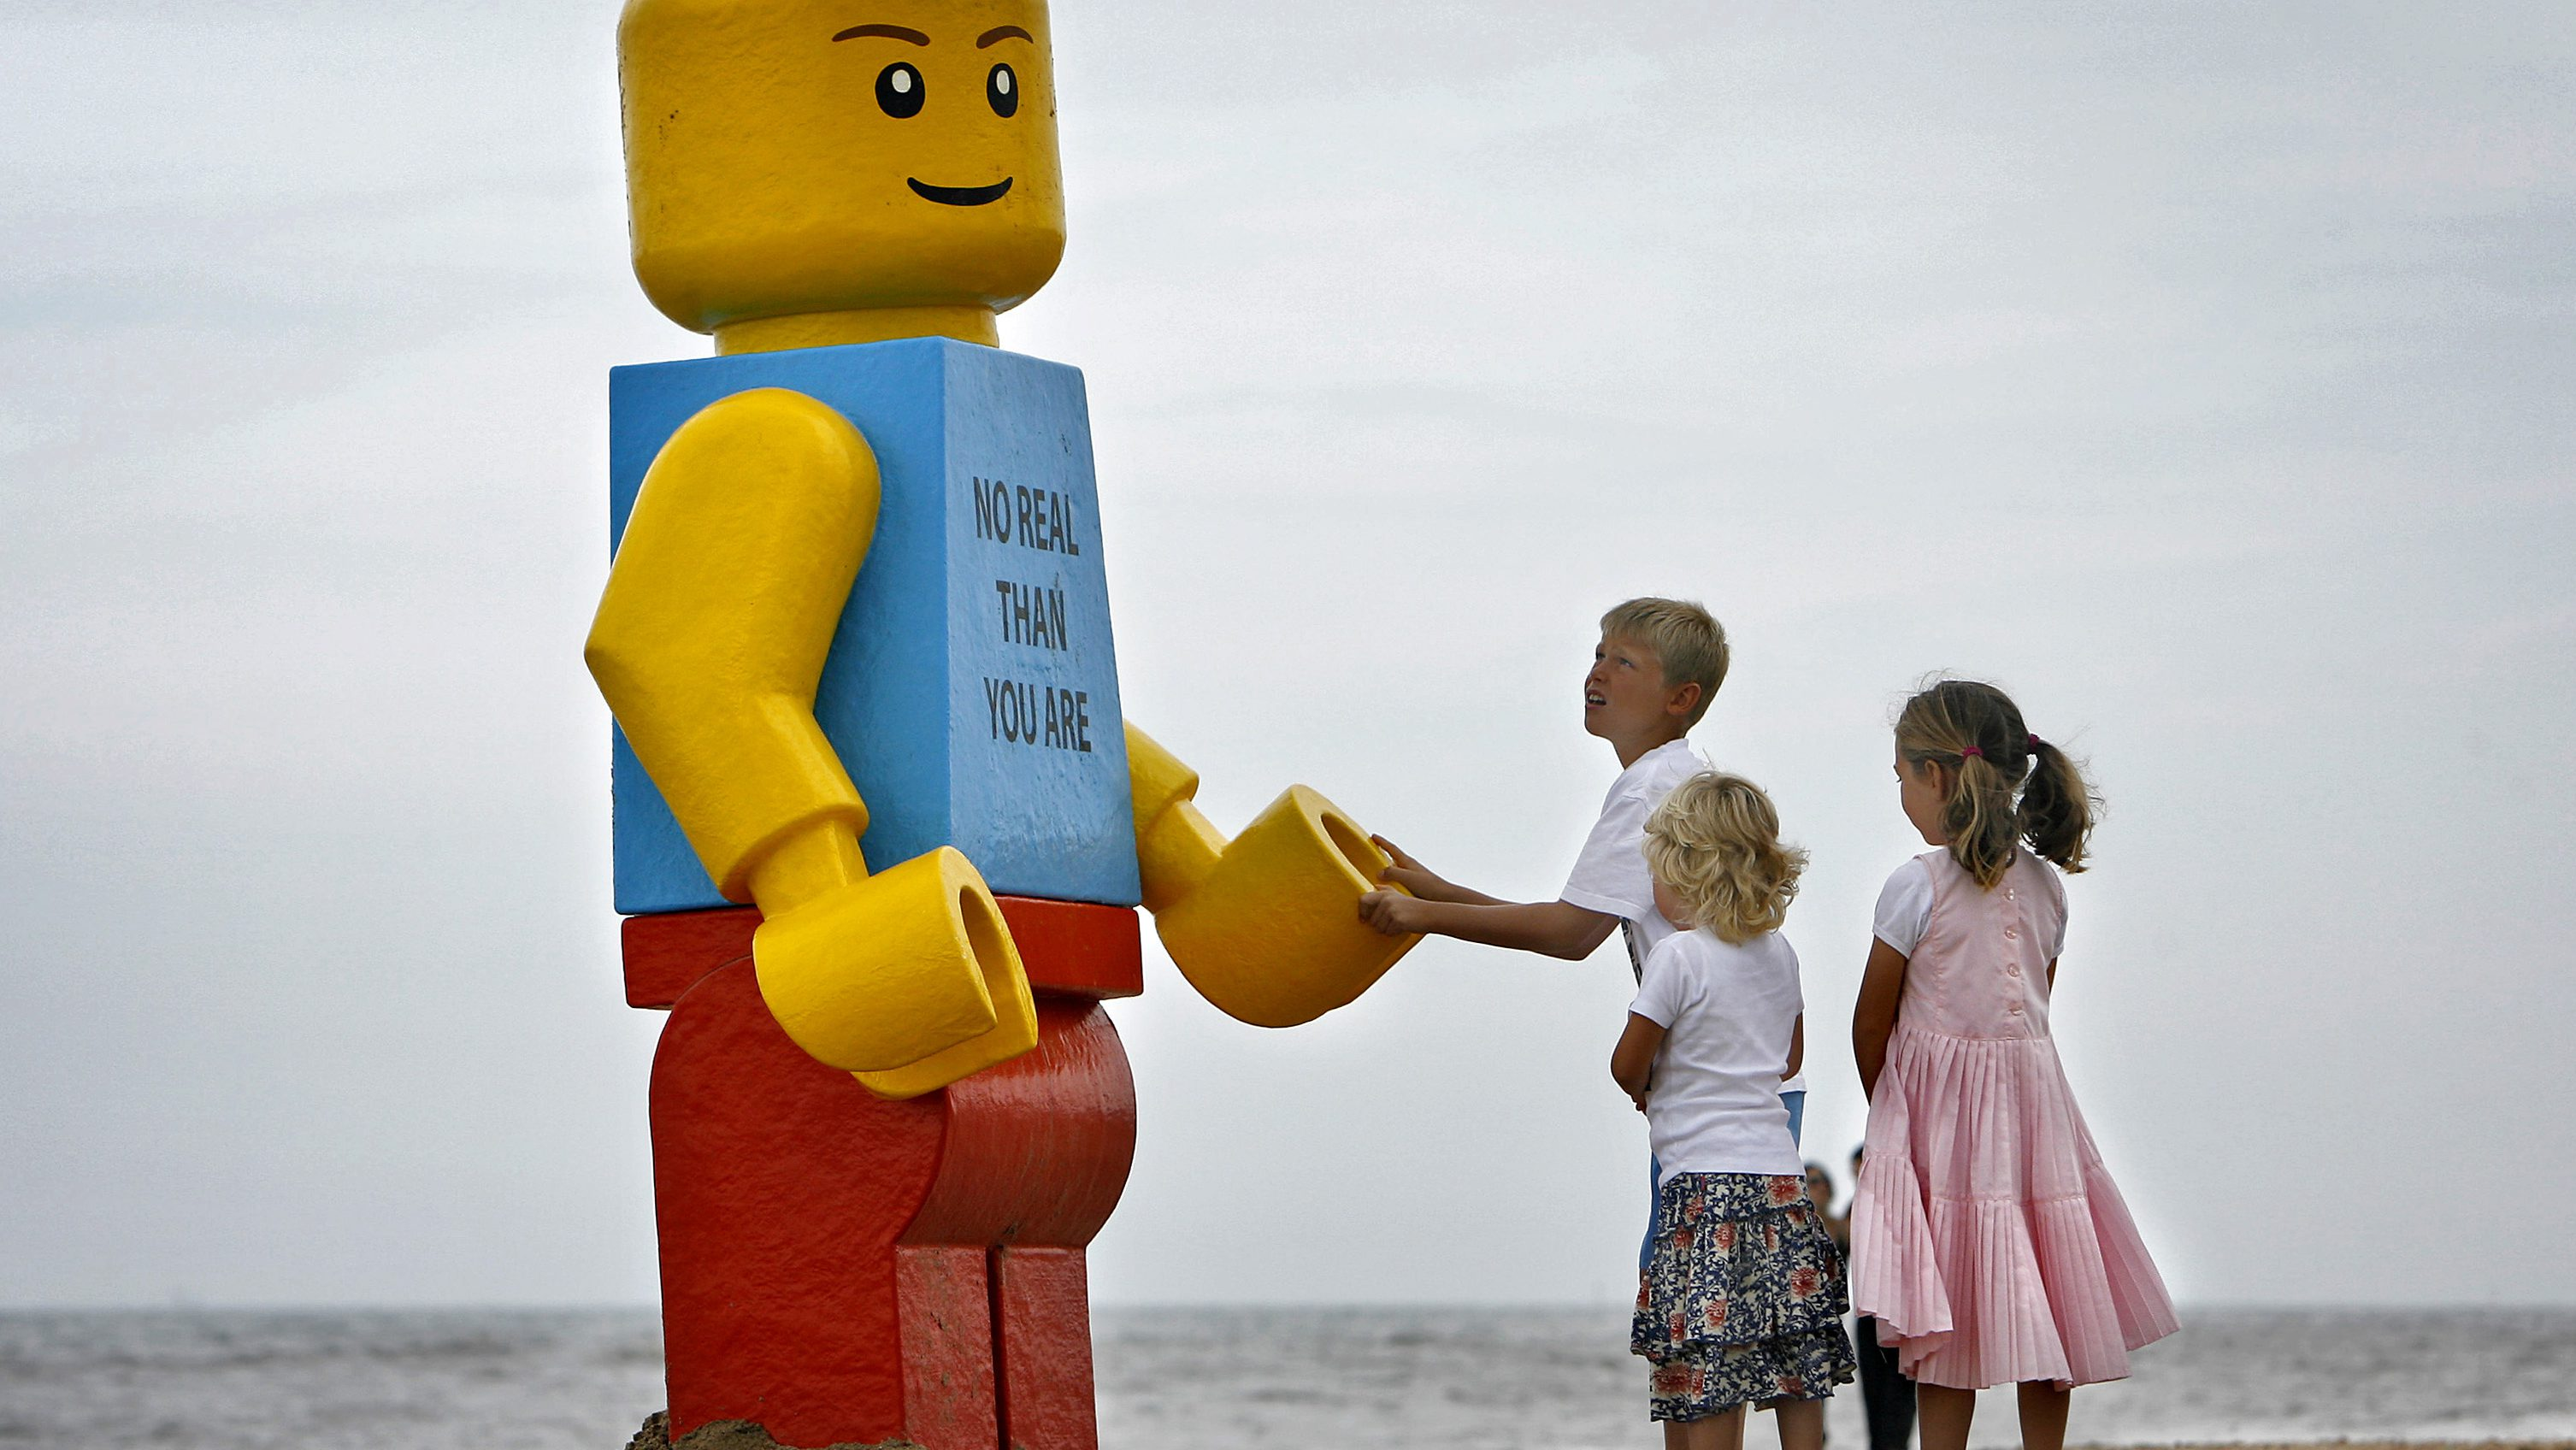 children play with giant Lego man